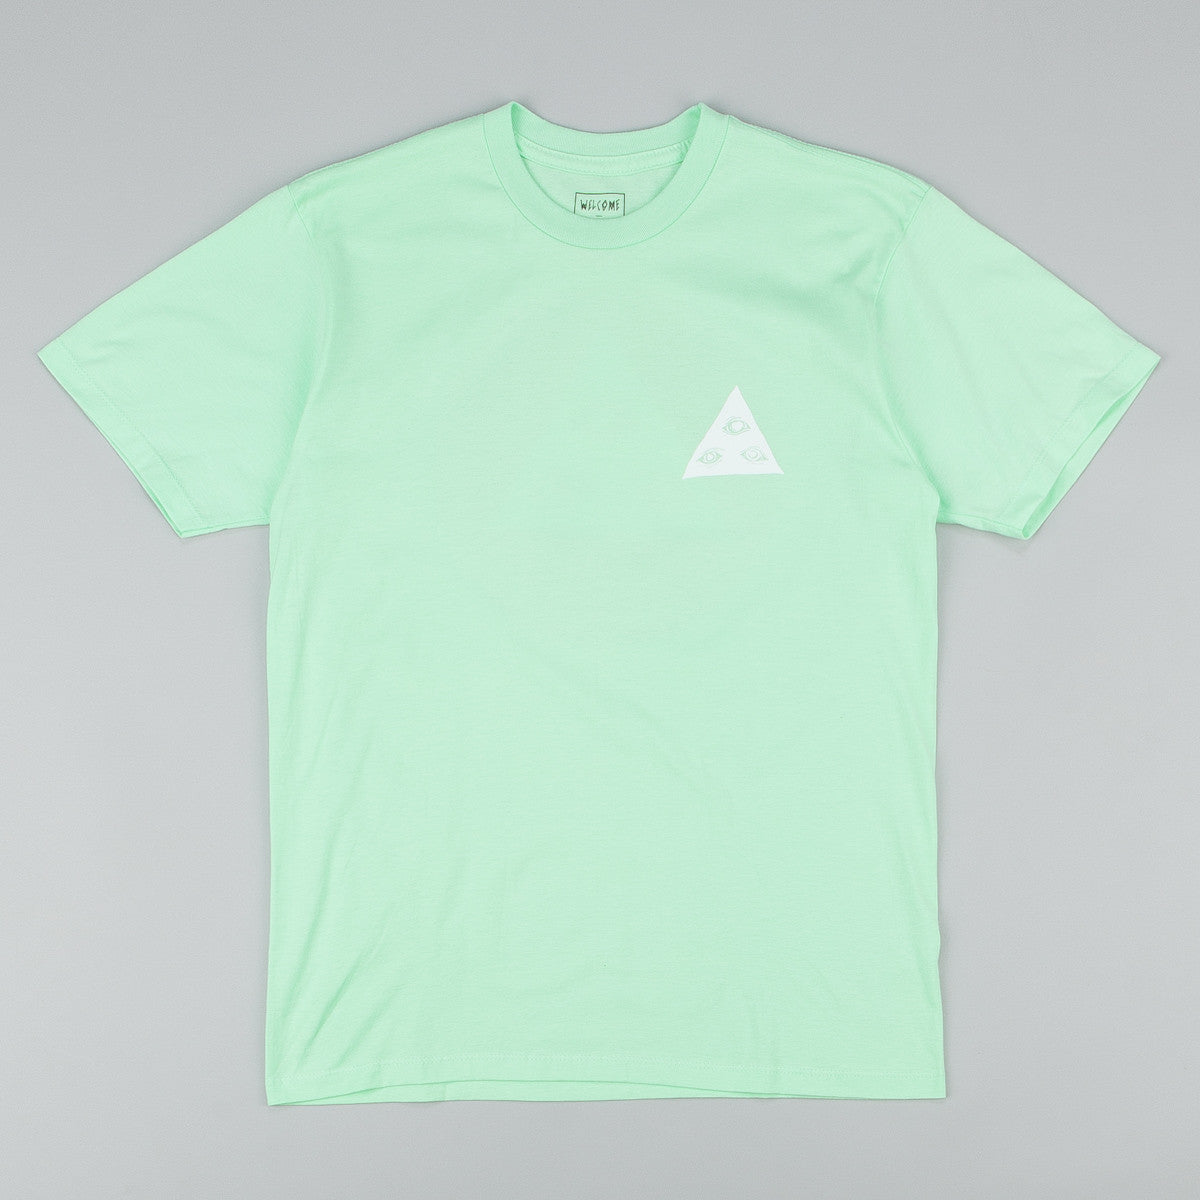 Welcome Talisman Tri-Colour T-Shirt - Mint / Red / White